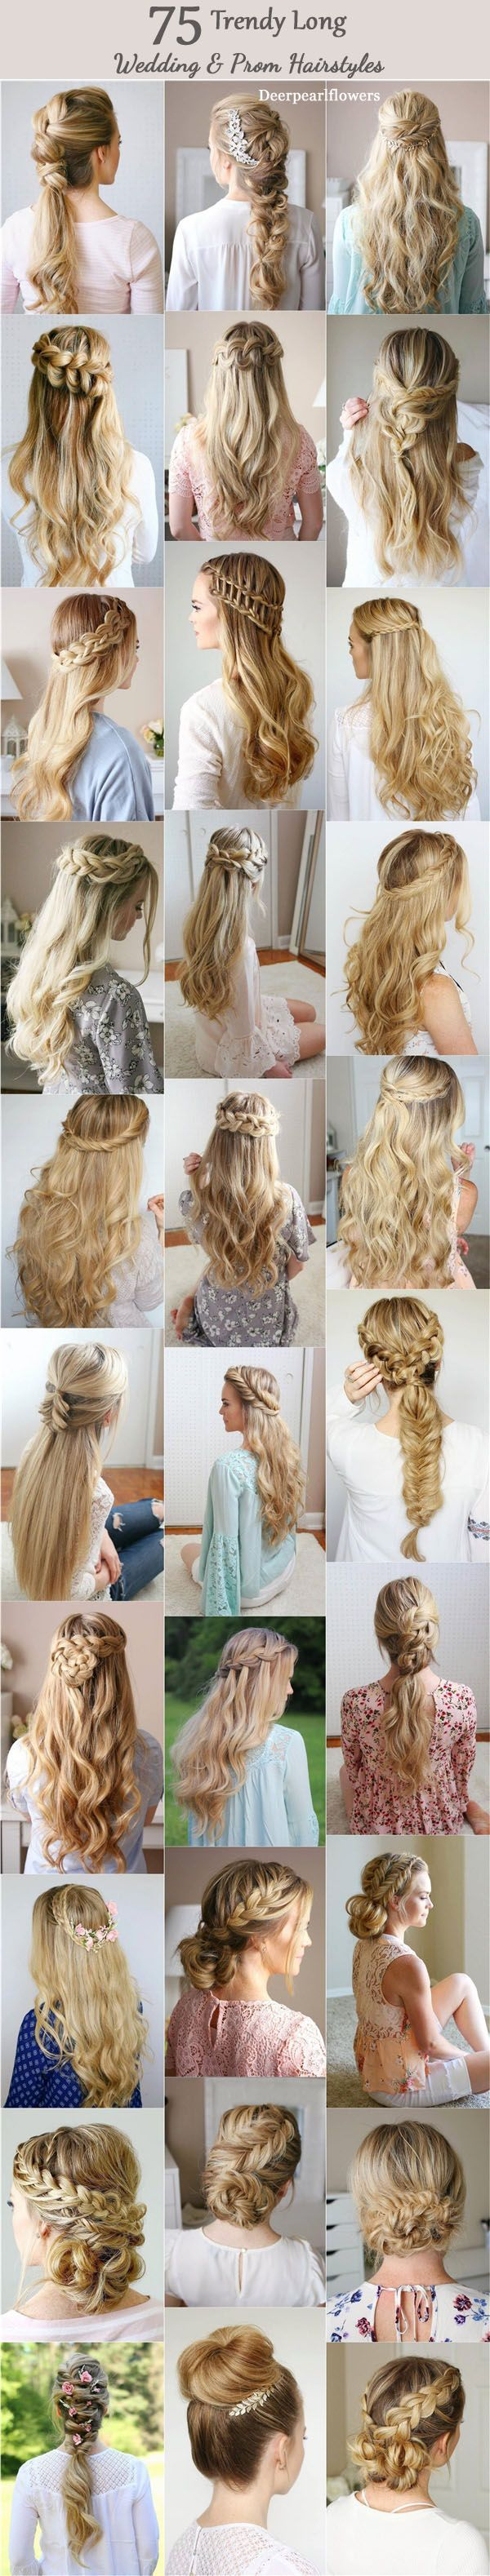 trendy long wedding u prom hairstyles to try in prom